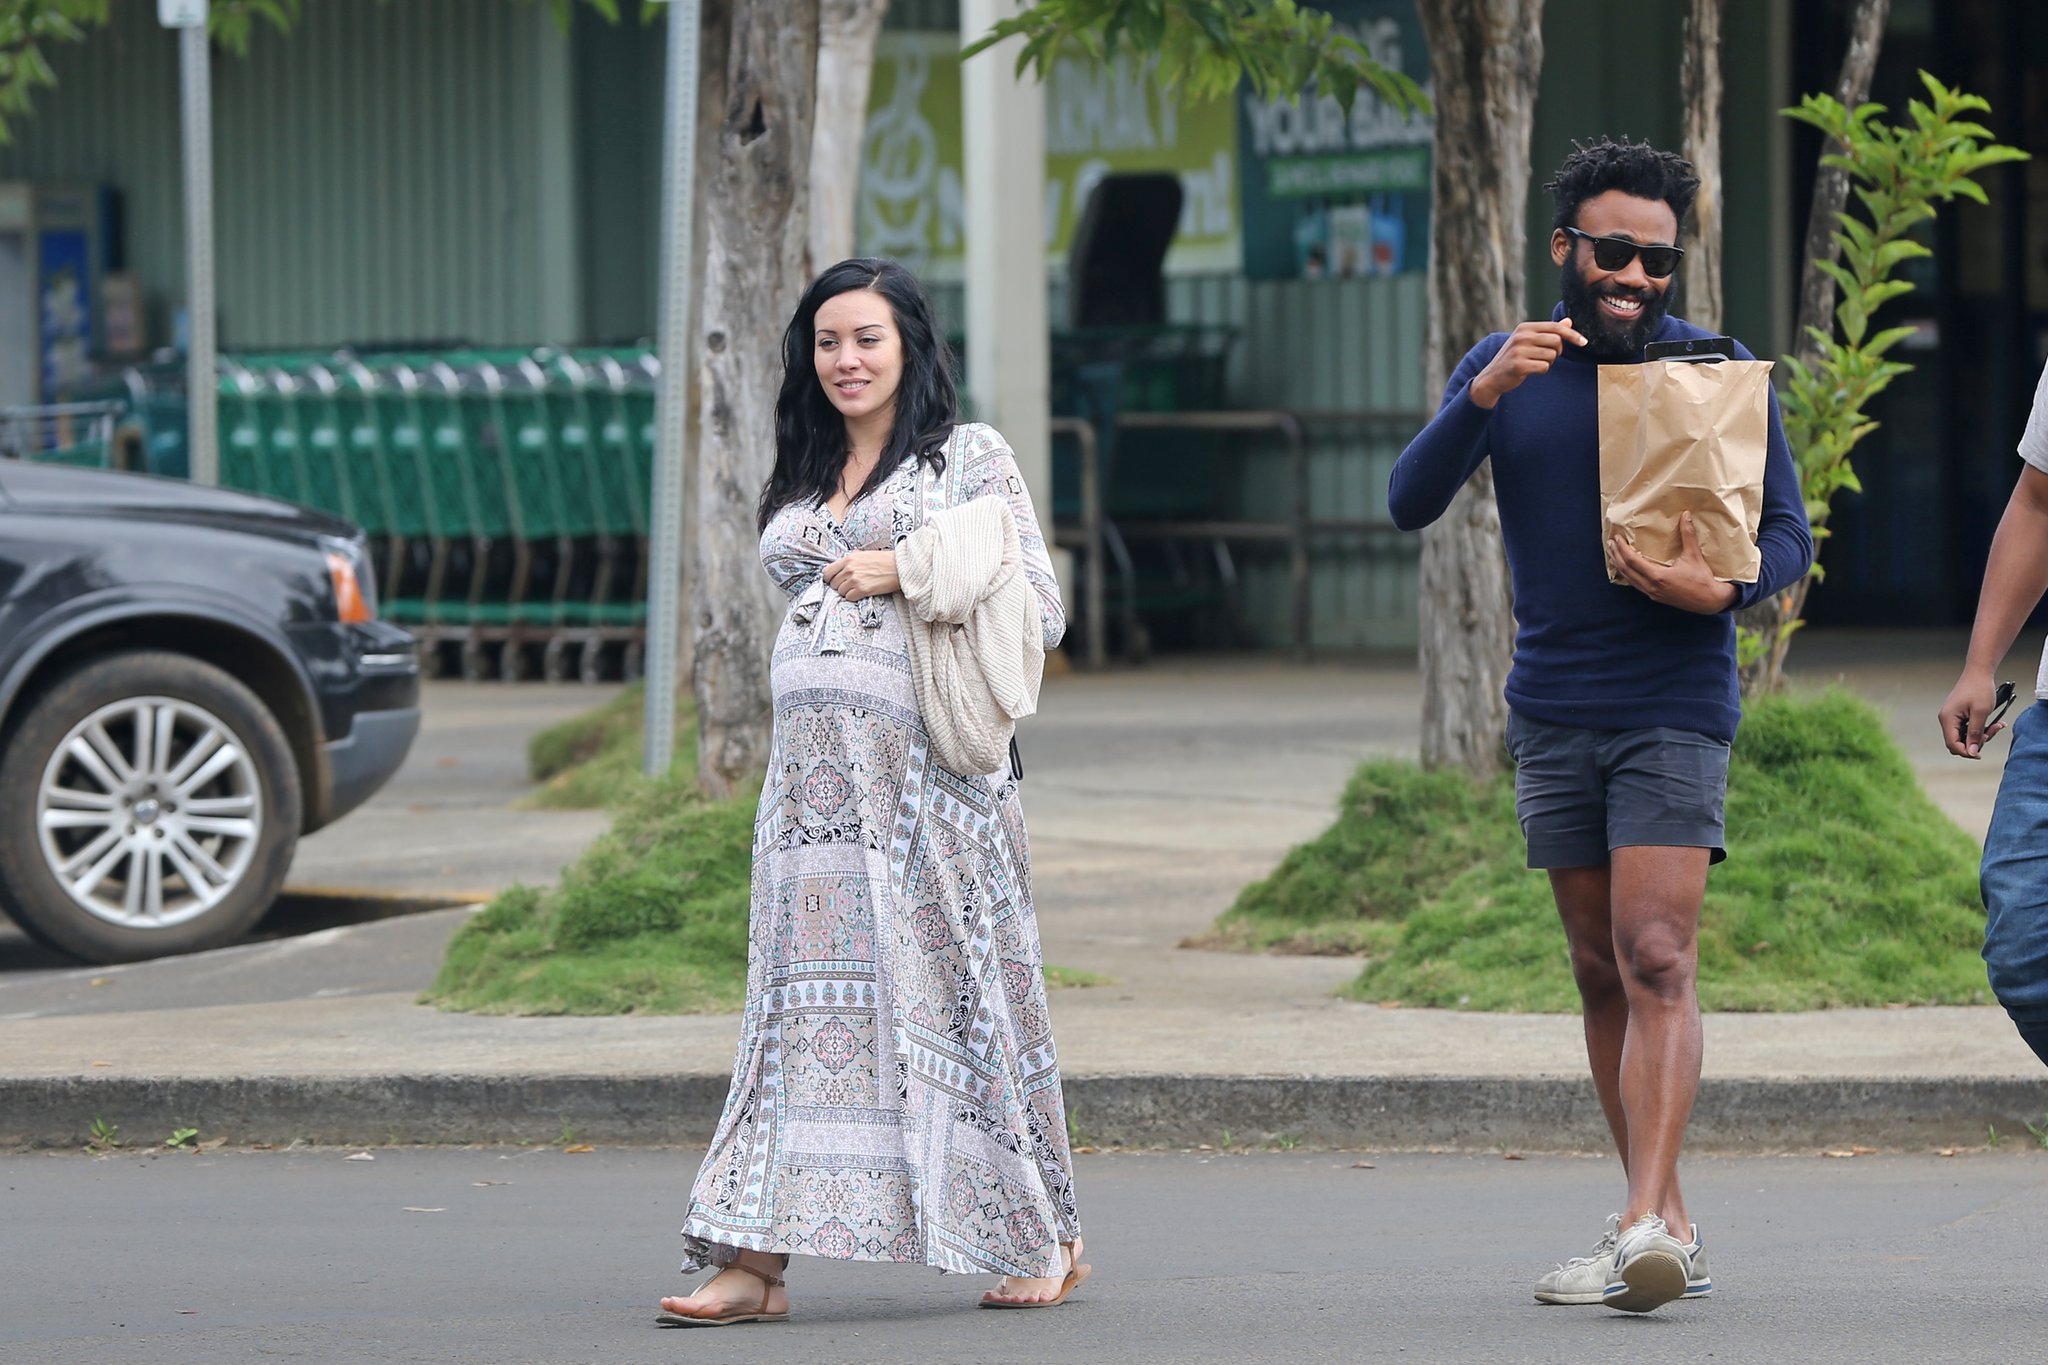 Why Do Black Men Like Donald Glover Tend To Date Outside